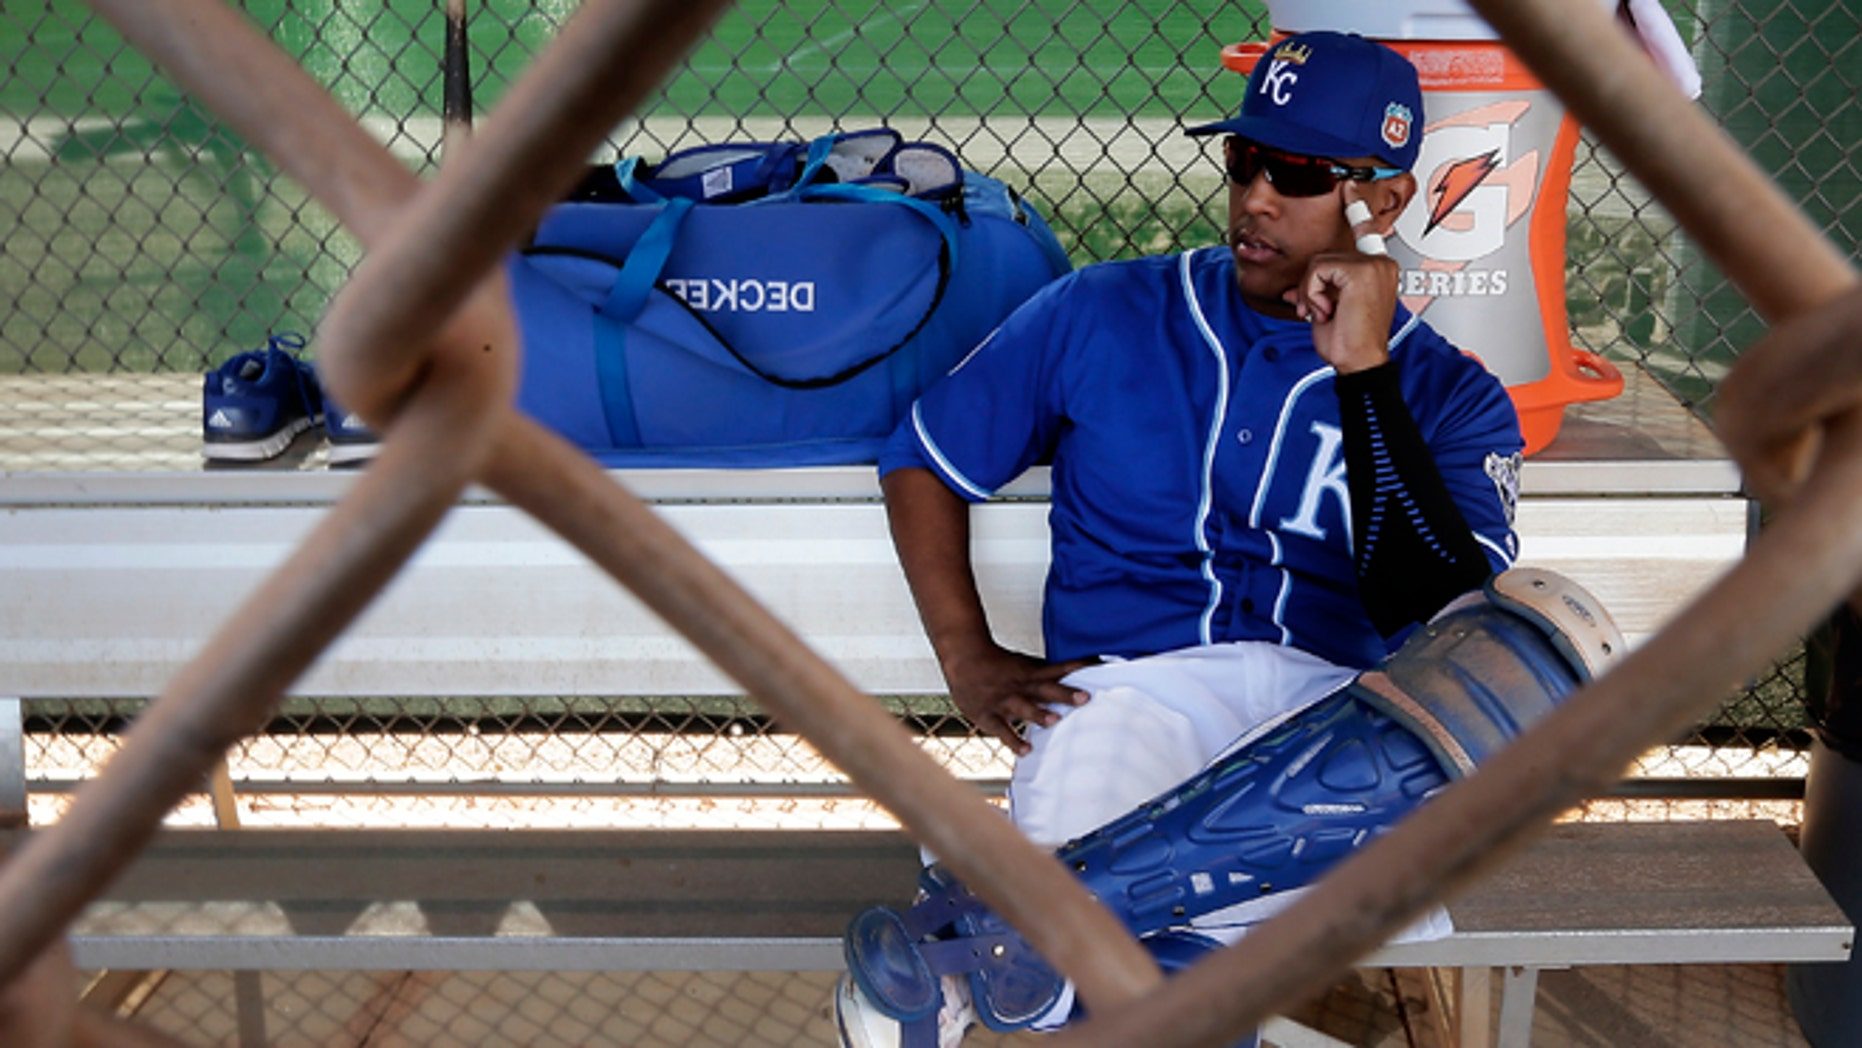 Kansas City Royals catcher Salvador Perez waits in a dugout before a drill during spring training baseball practice Tuesday, Feb. 23, 2016, in Surprise, Ariz. (AP Photo/Charlie Riedel)